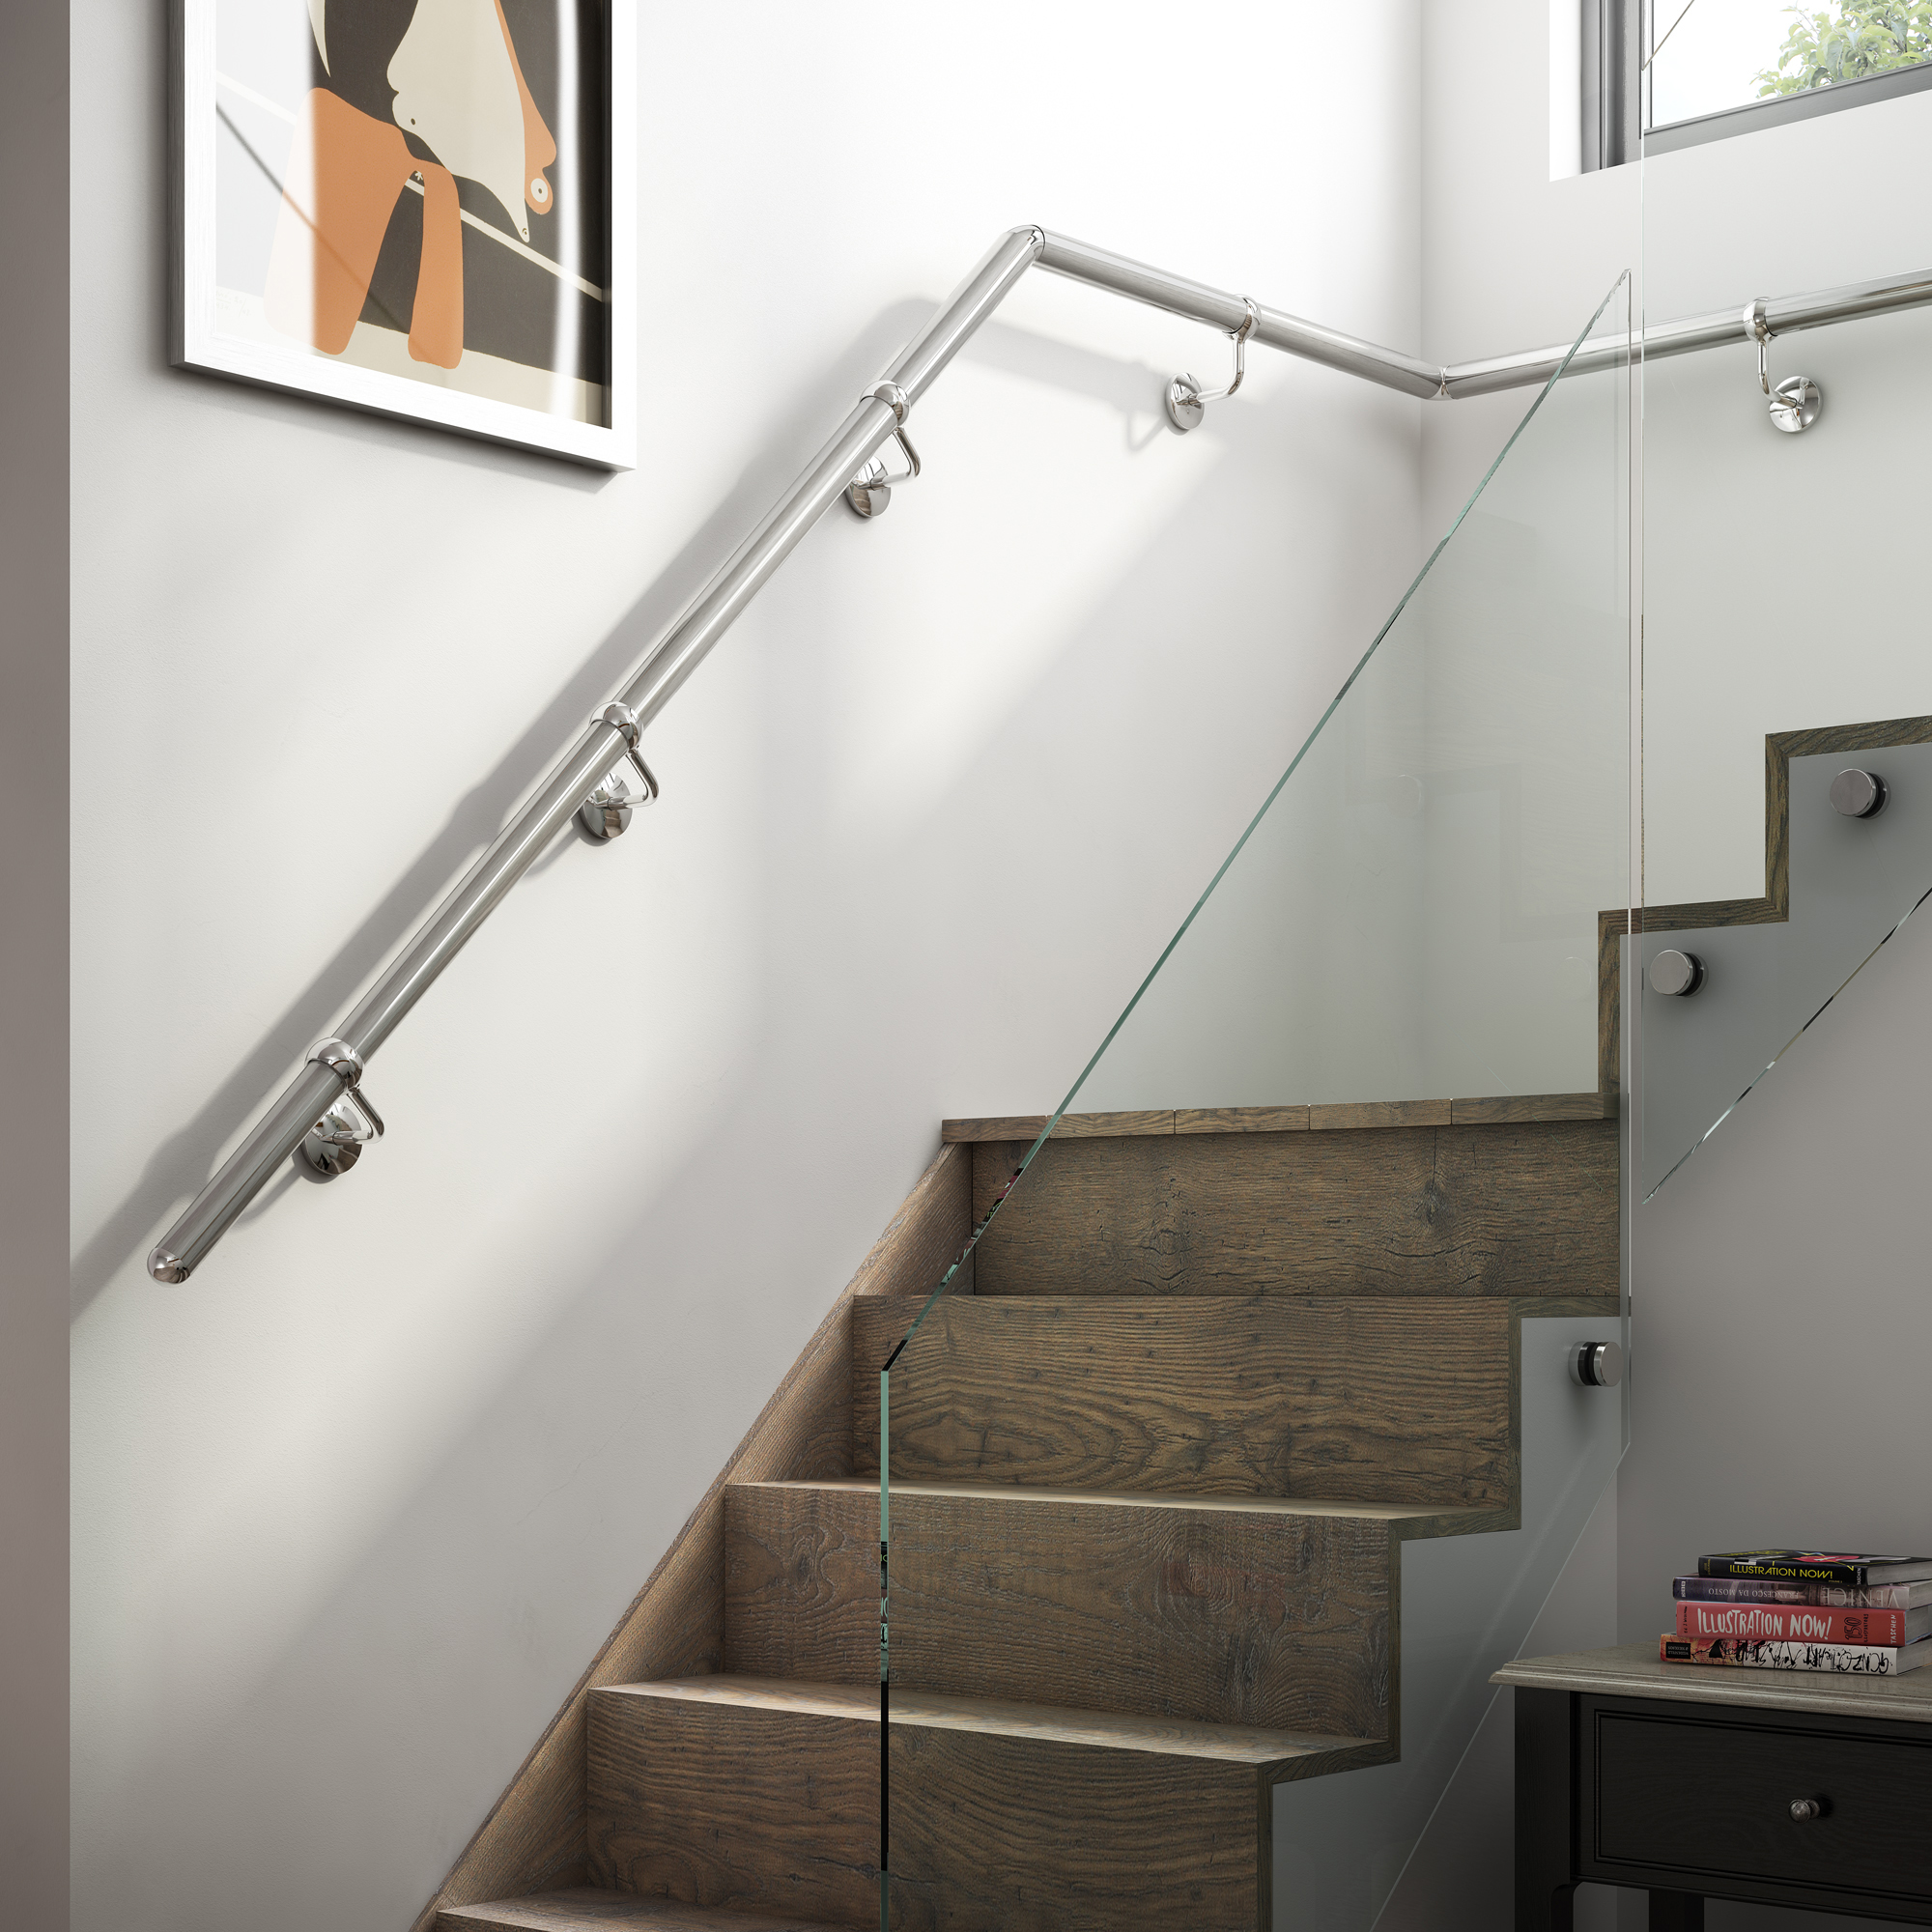 Rothley handrail system ds supplies for Exterior wall mounted handrails for stairs